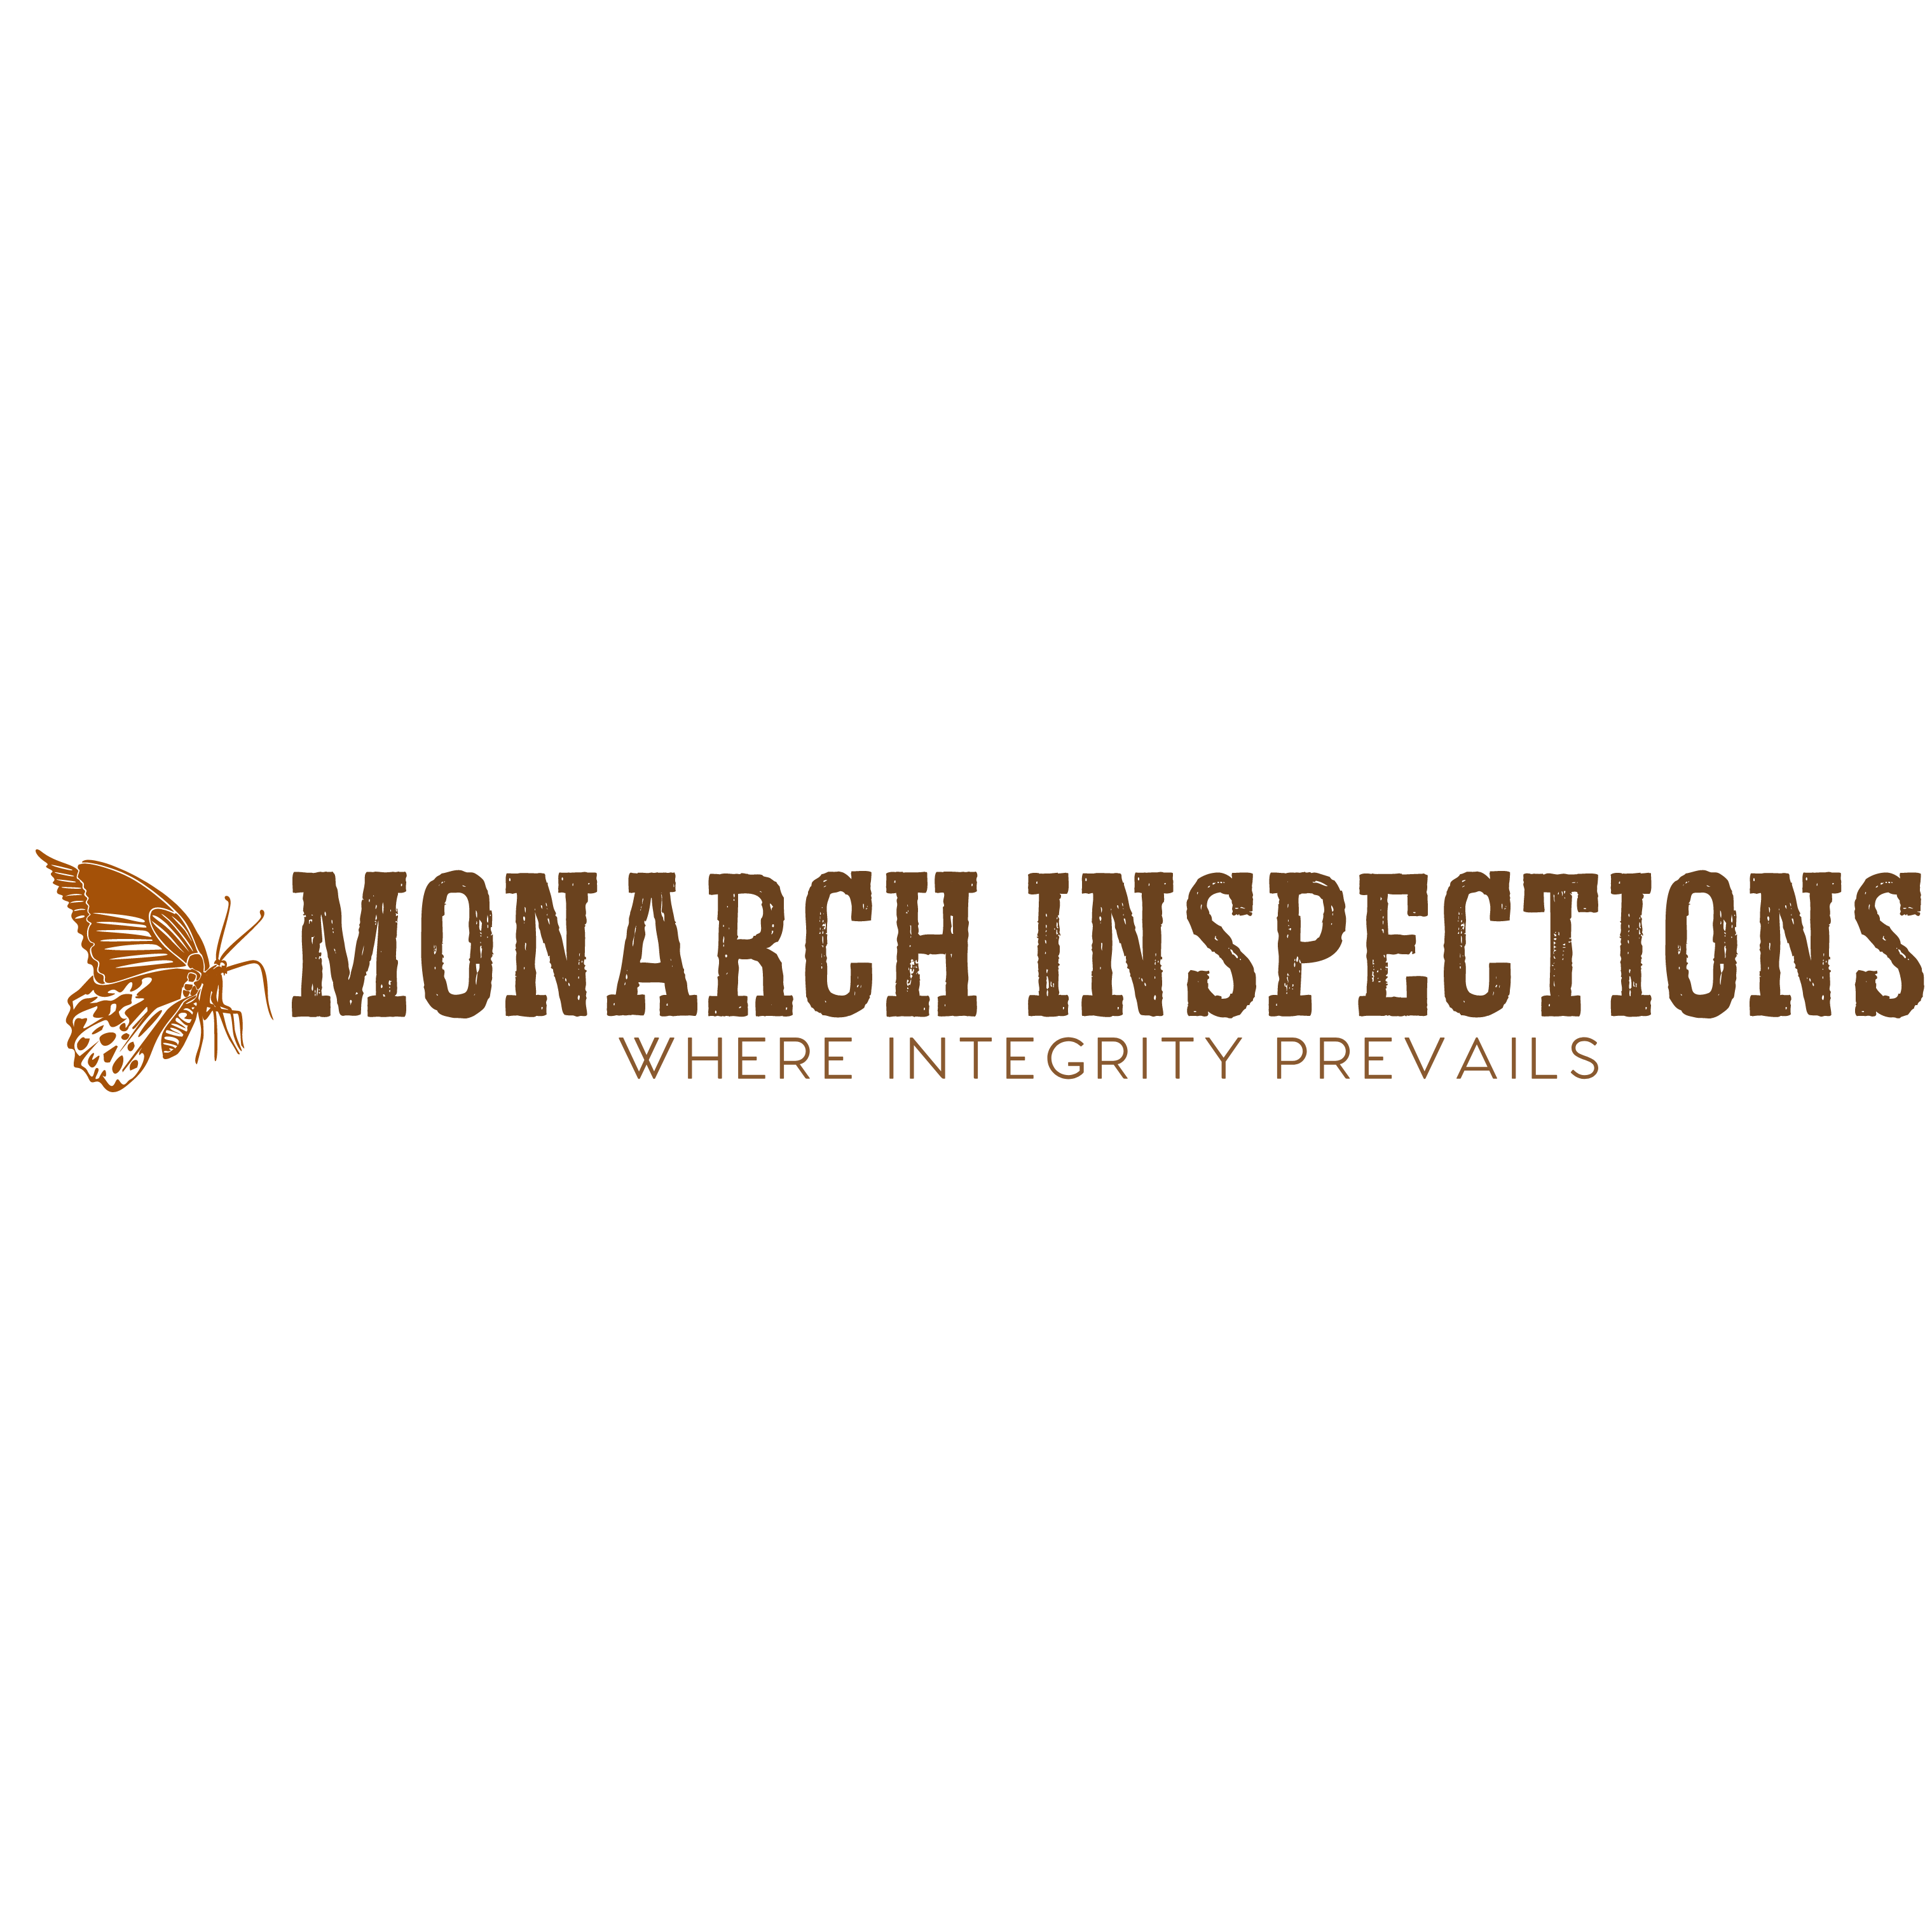 Monarch Inspections image 3